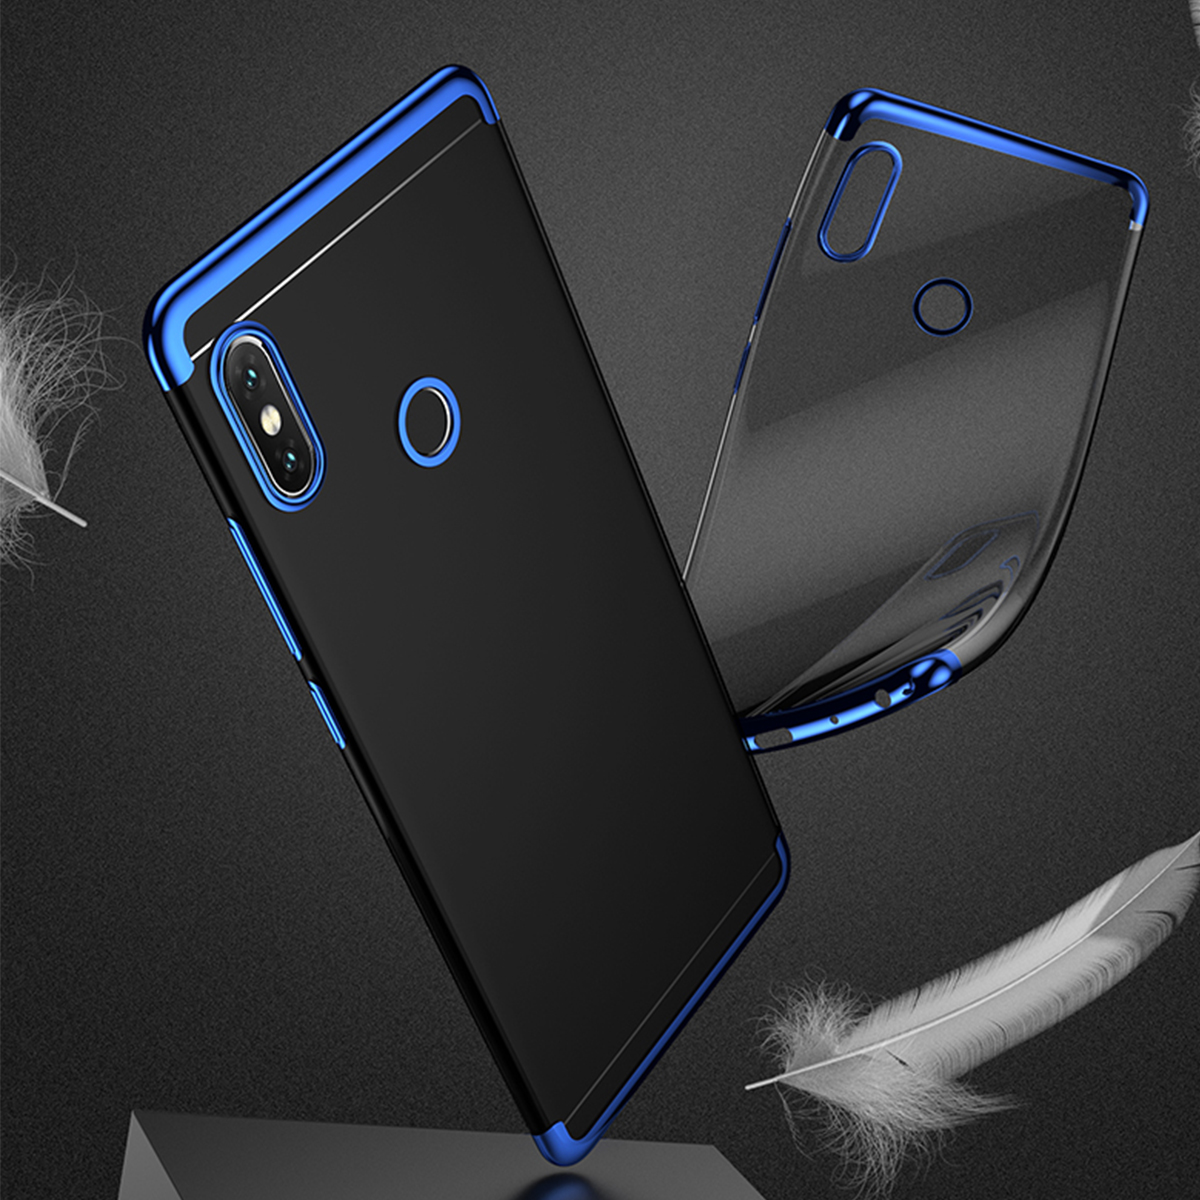 new products 7413f 3c533 Xiaomi Redmi Note 5 Redmi S2 Mi Mix 2S Electroplate TPU Soft Case Cover  Casing